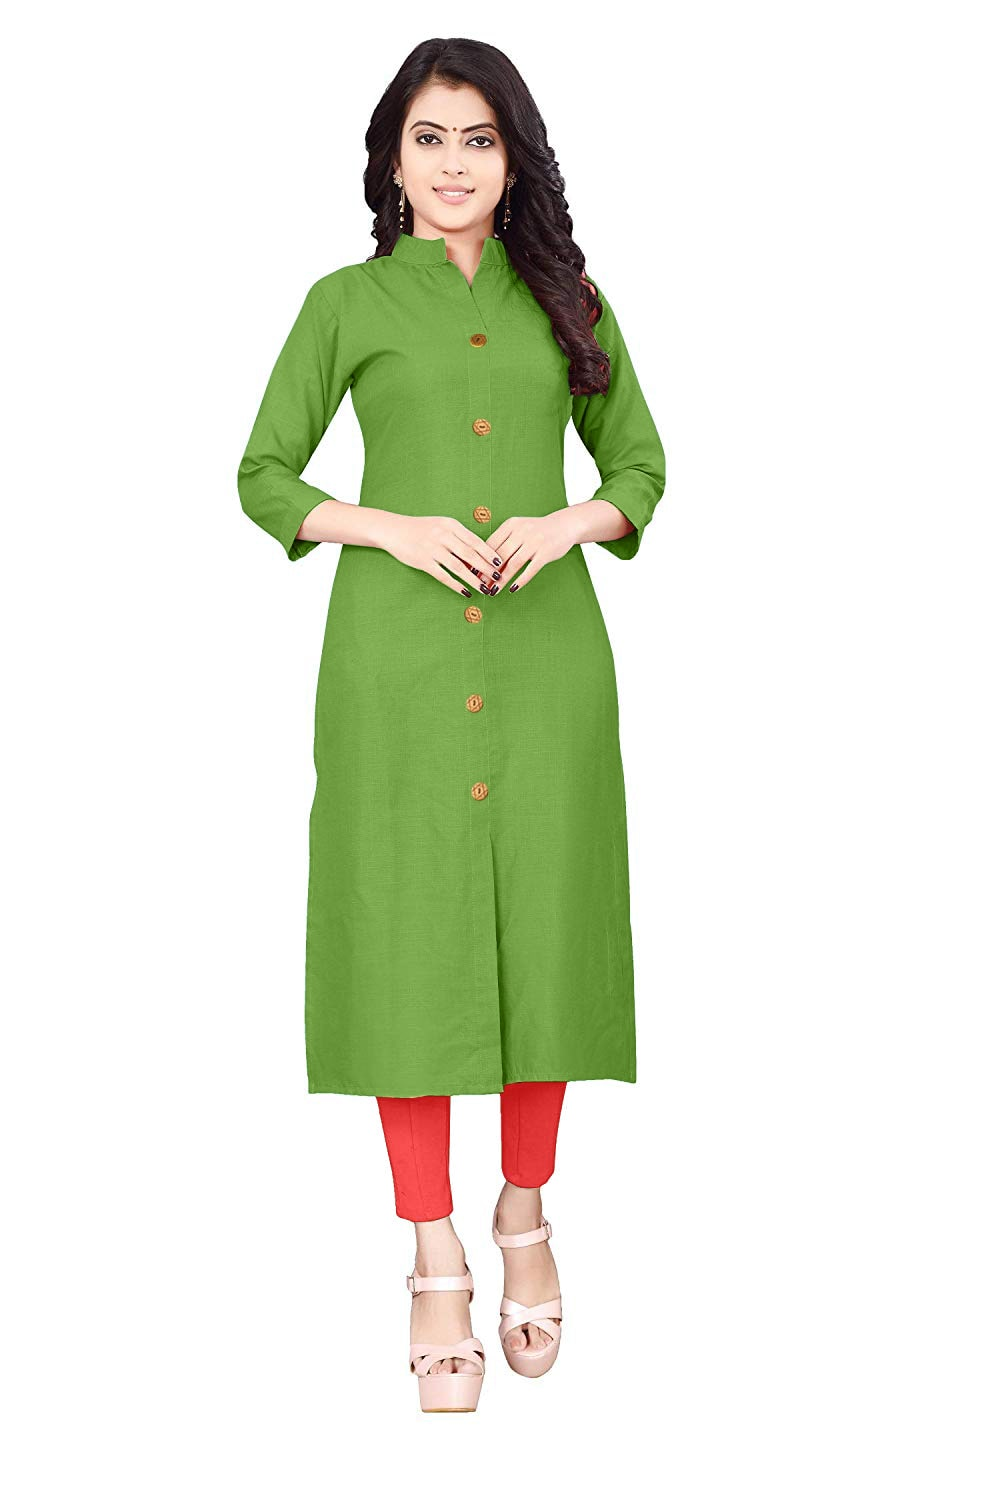 https://assetscdn1.paytm.com/images/catalog/product/A/AP/APPHF-HOLYDAY-FHOLY223093AB3A9FAE/0..jpg